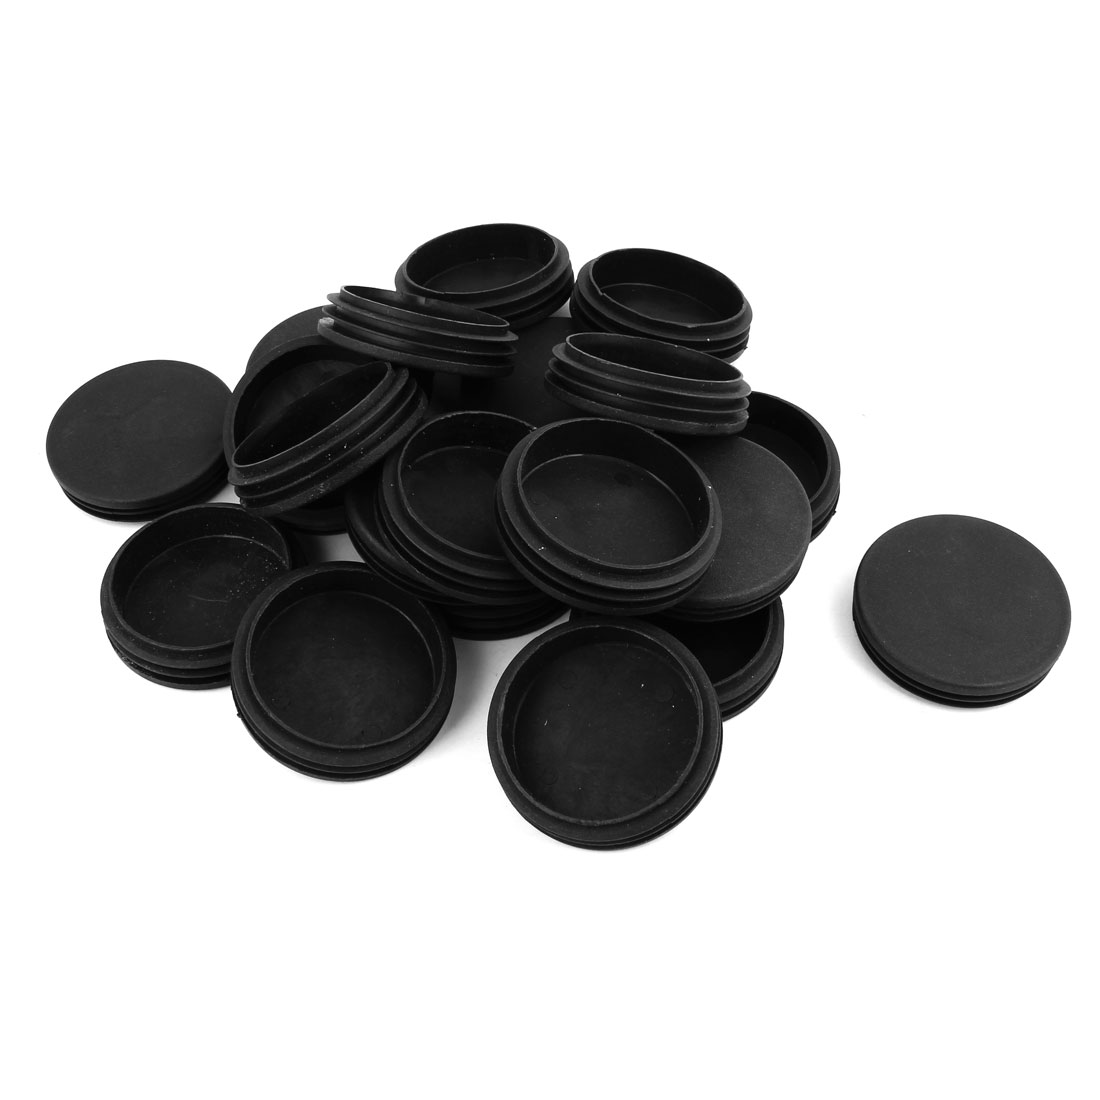 74mm Dia Plastic Round Tube Inserts End Blanking Caps Black 20 Pcs